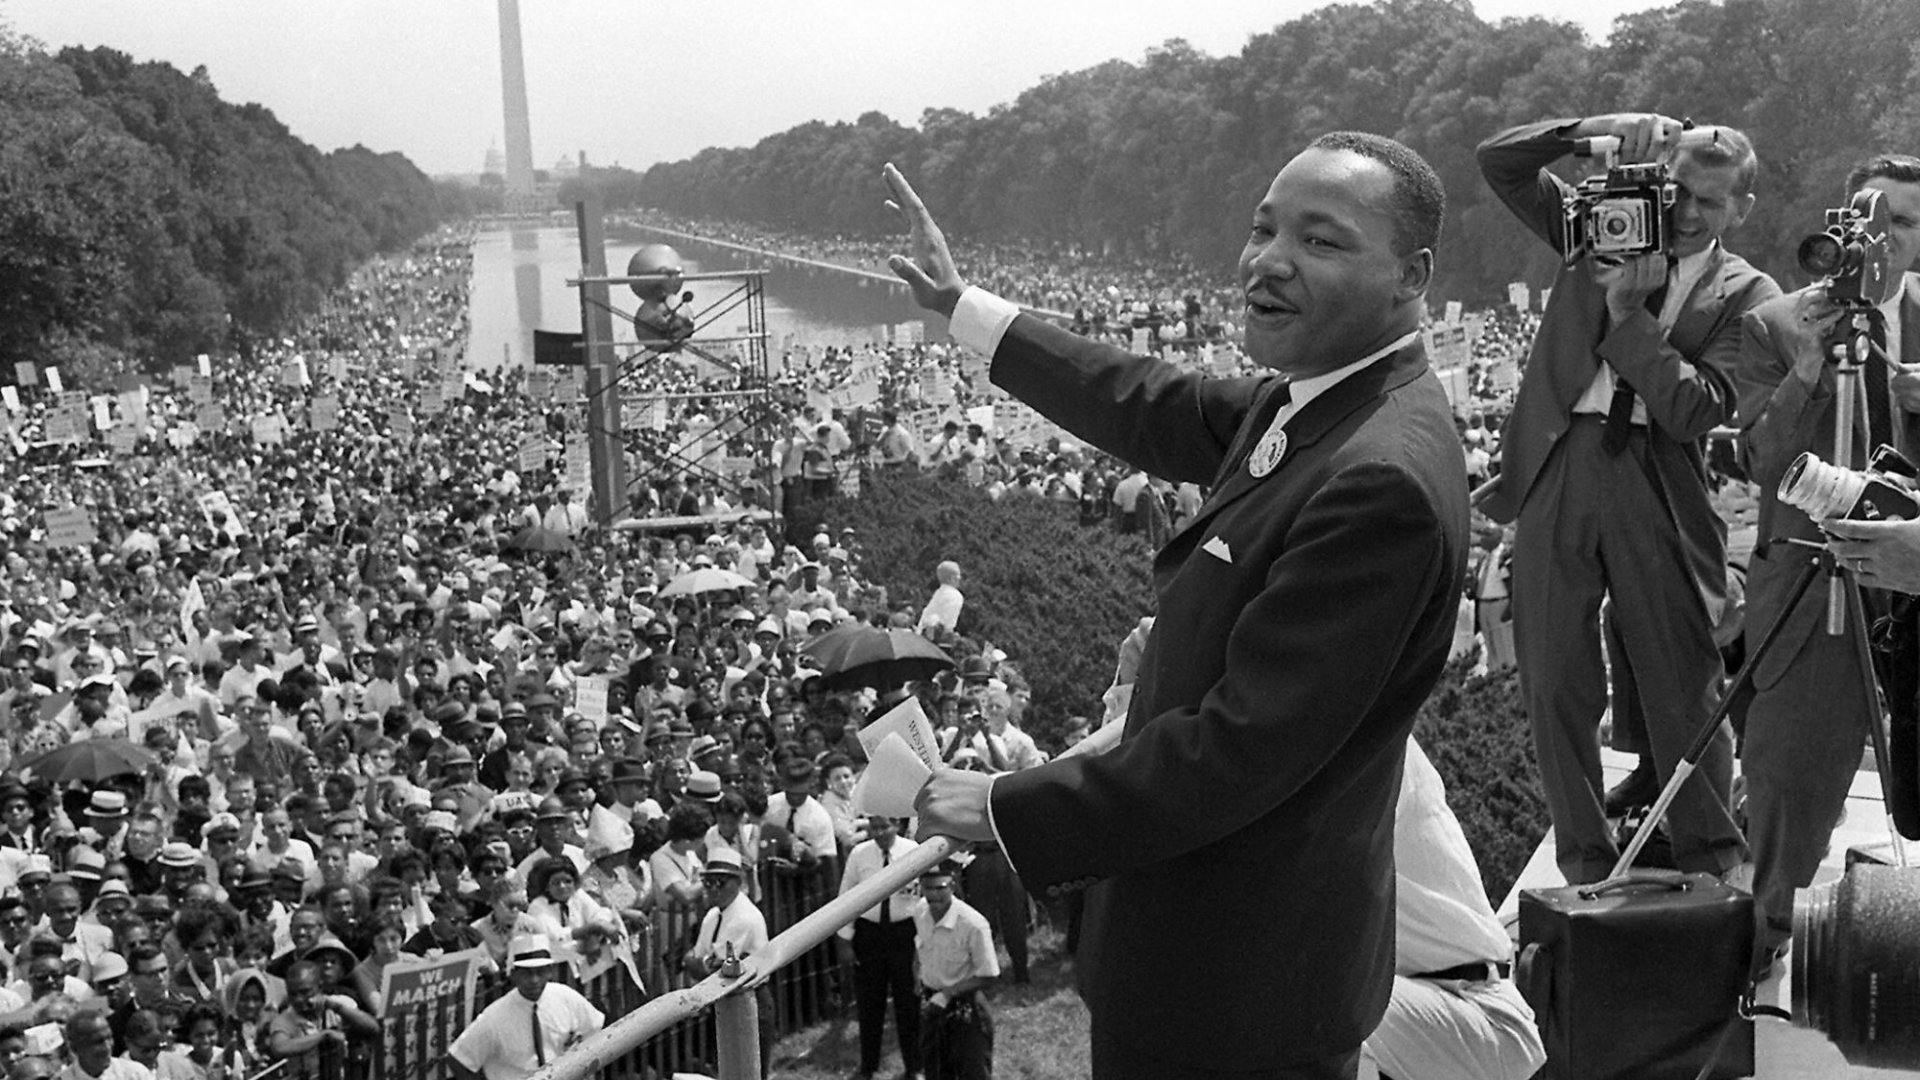 Want to Be a Great Speaker? 7 Key Lessons From Martin Luther King Jr.